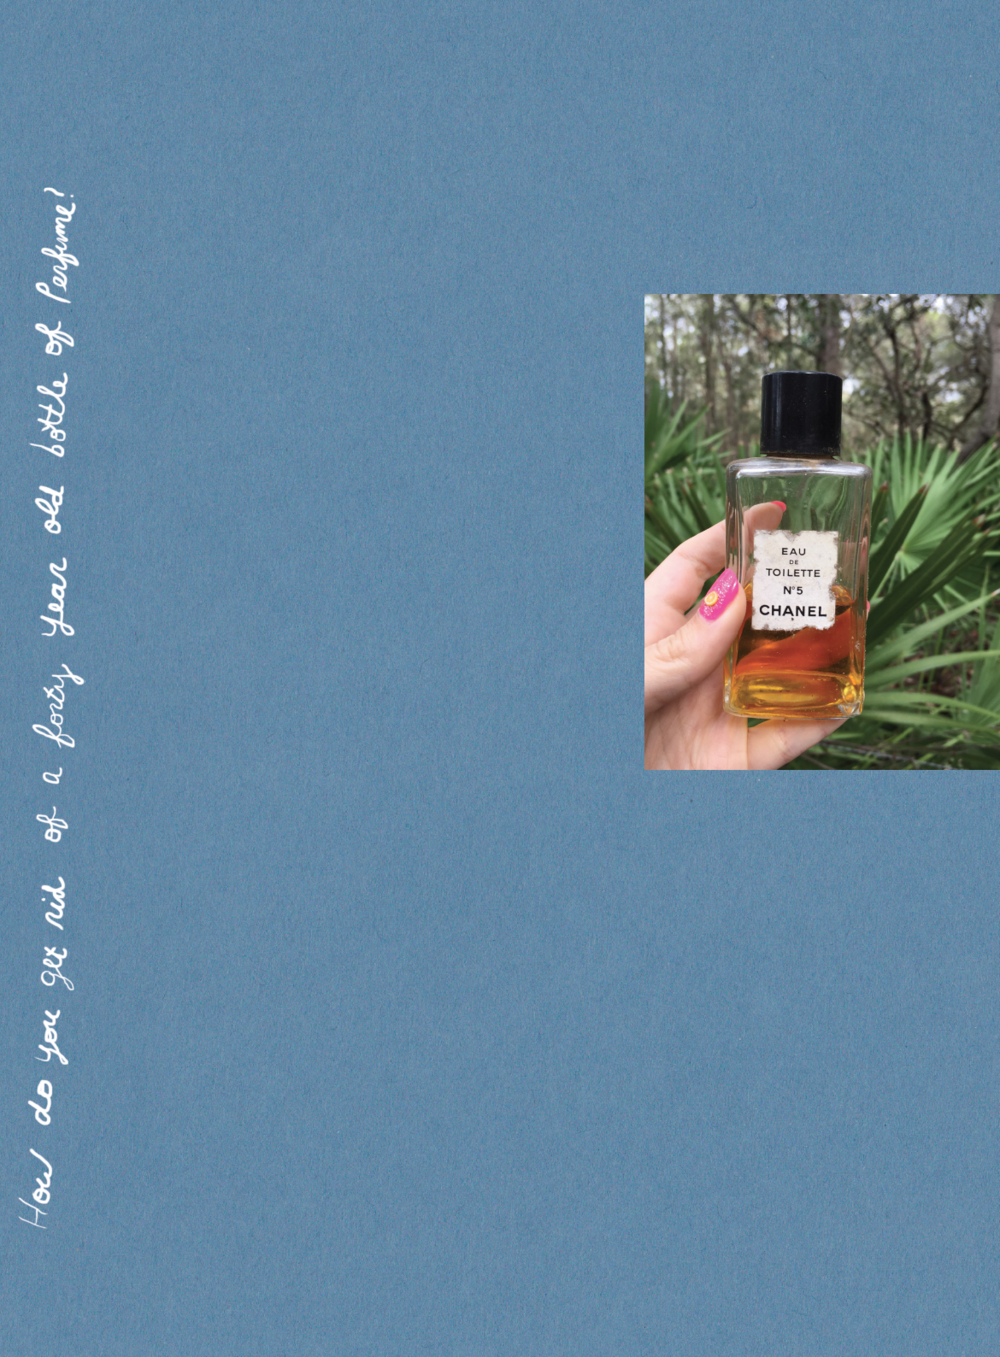 How do you get rid of a forty year old bottle of perfume? , Essay by Roz Crews with drawings by Suzanne Crews, published by Sunday Painter Press, July 2017.   $30 (available)    Roz Crews created this exhibition in book form as a gift for her mom, Suzanne Crews. Inside you'll find a collection of drawings Suzanne made on envelopes, receipts, and credit card statements along with an essay Roz wrote about the value of valuing your own work.